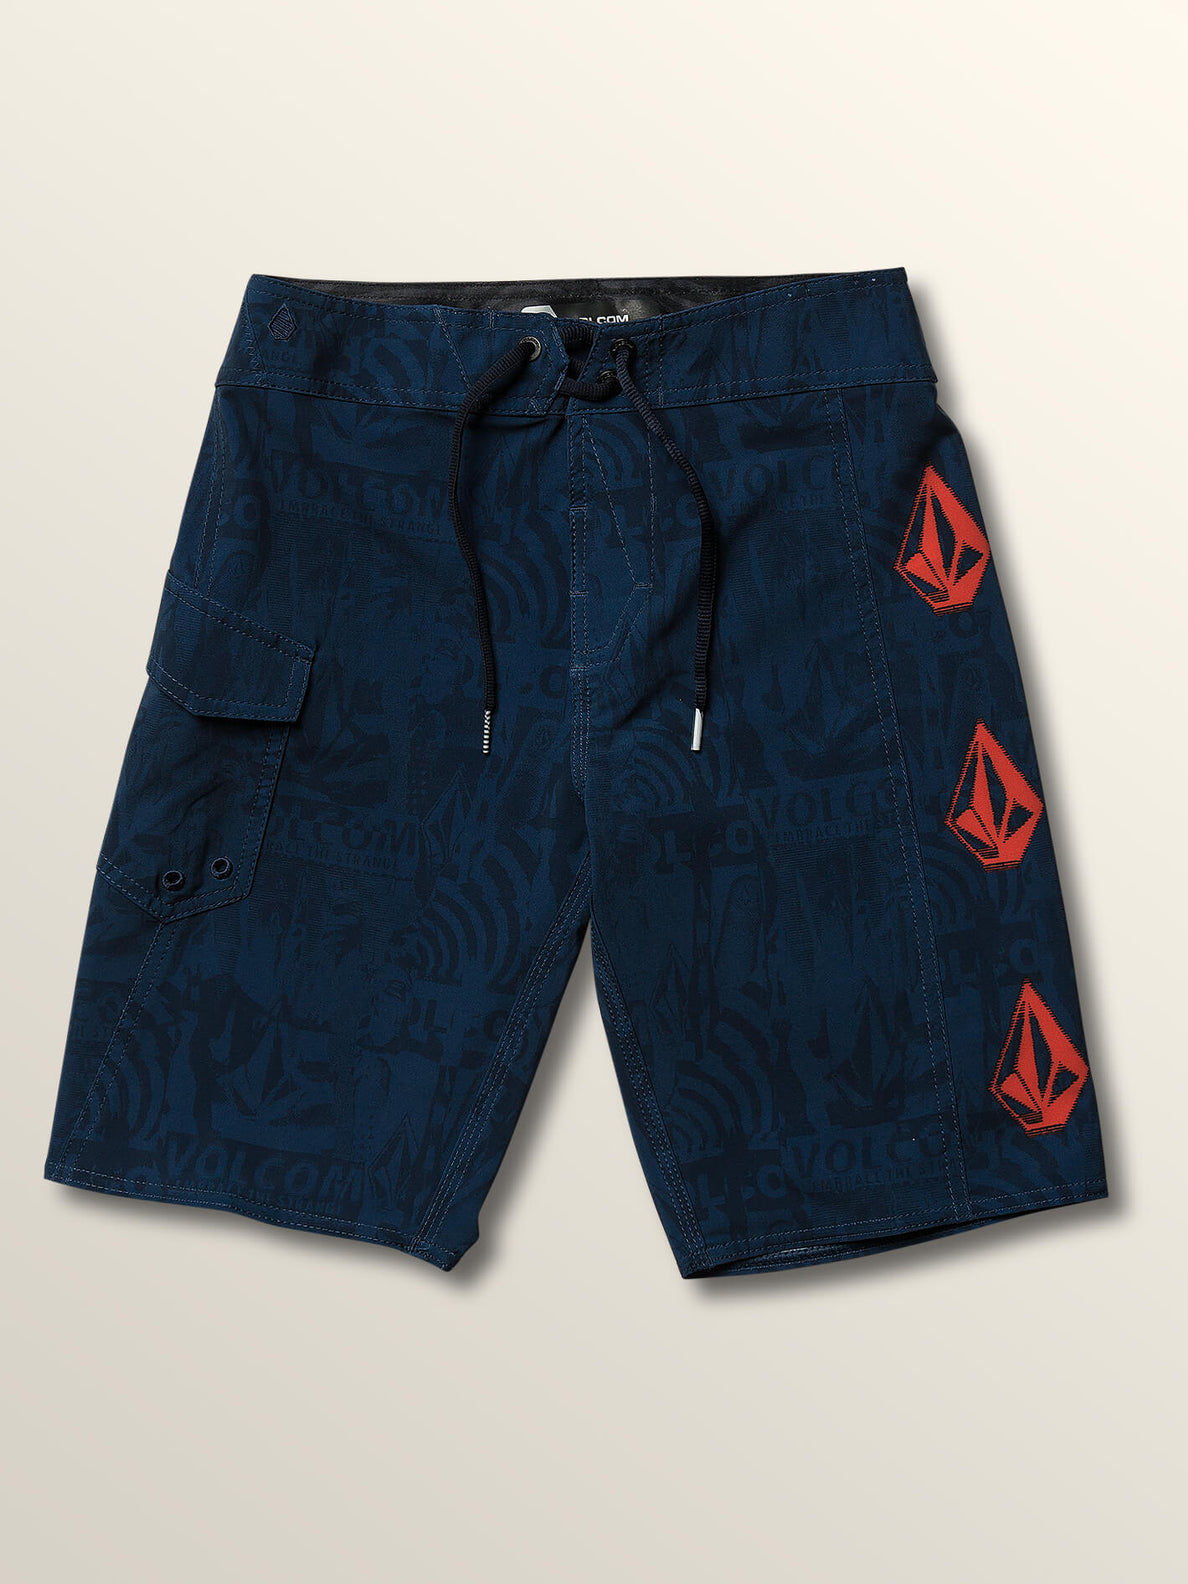 Big Boys Deadly Stones Mod Boardshorts In Melindigo, Front View